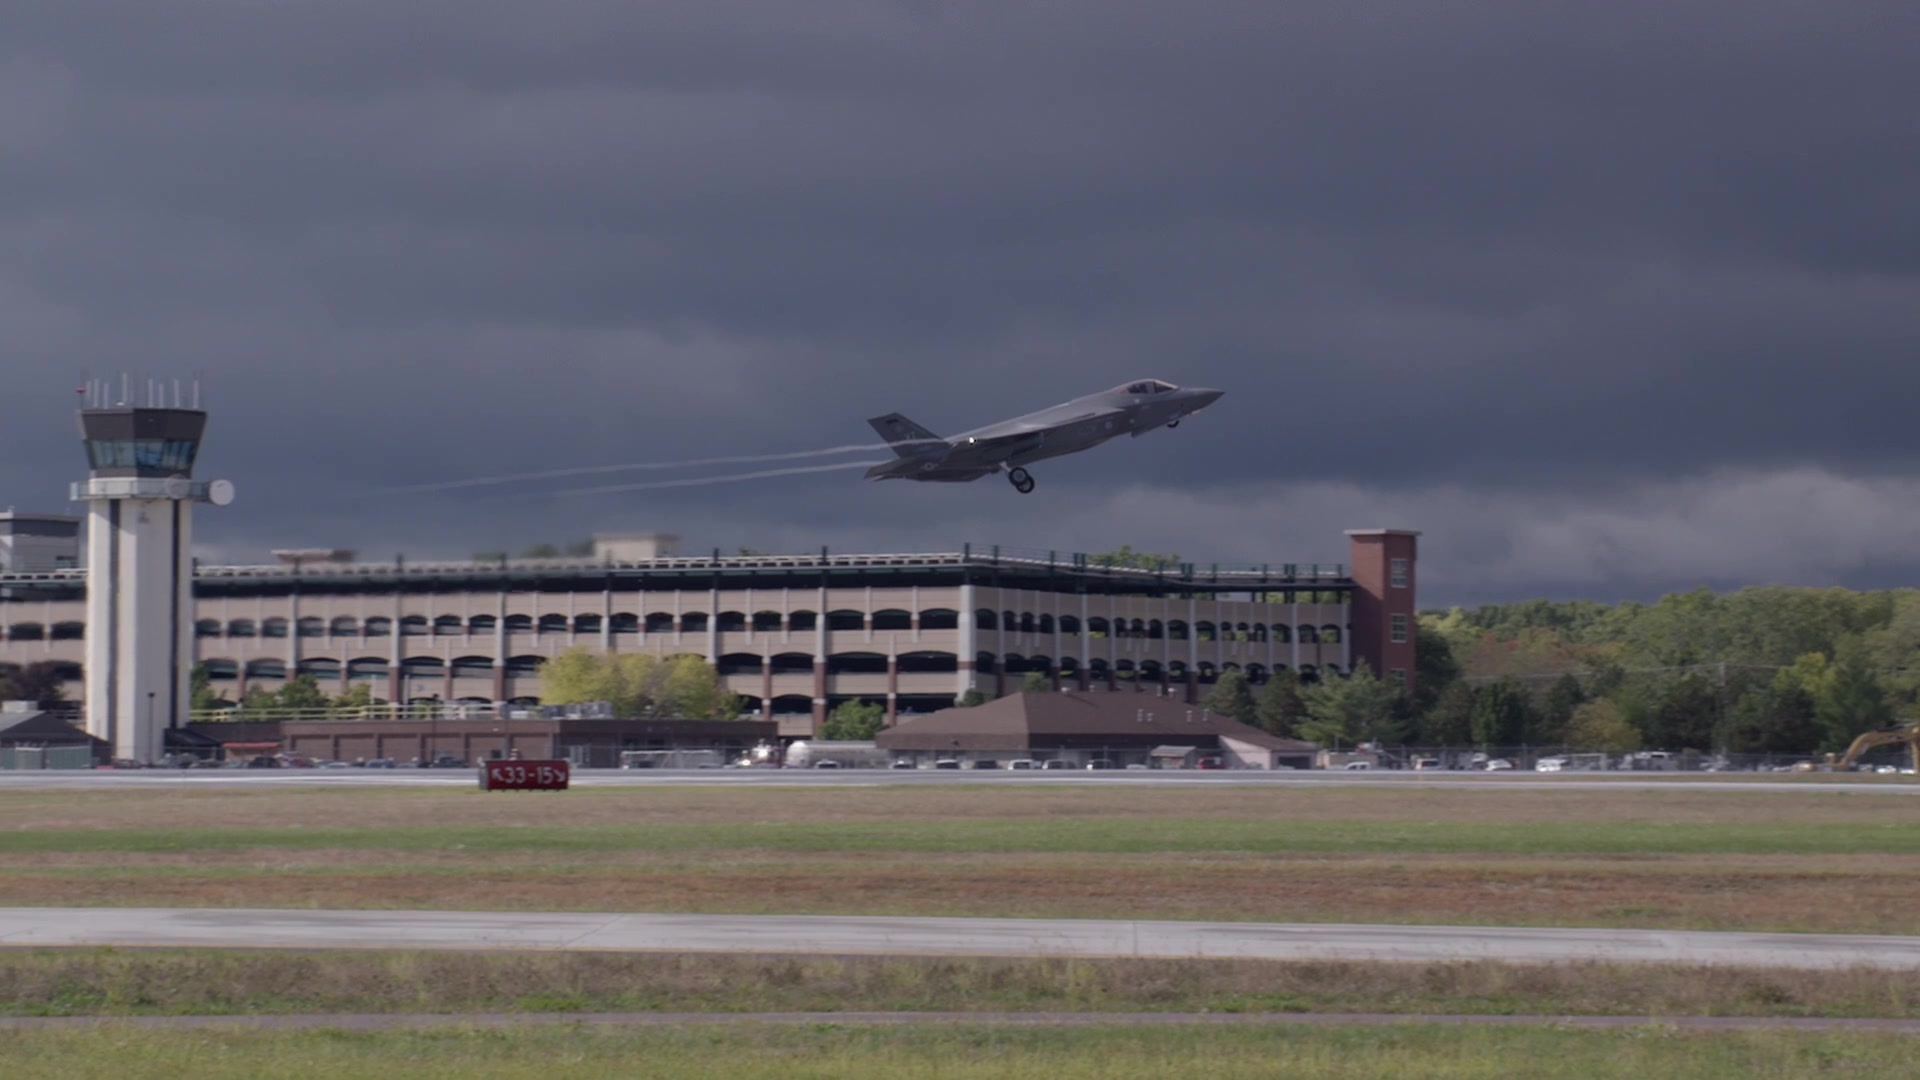 Video of the first Air National Guard unit to receive the F-35 Lightning II.